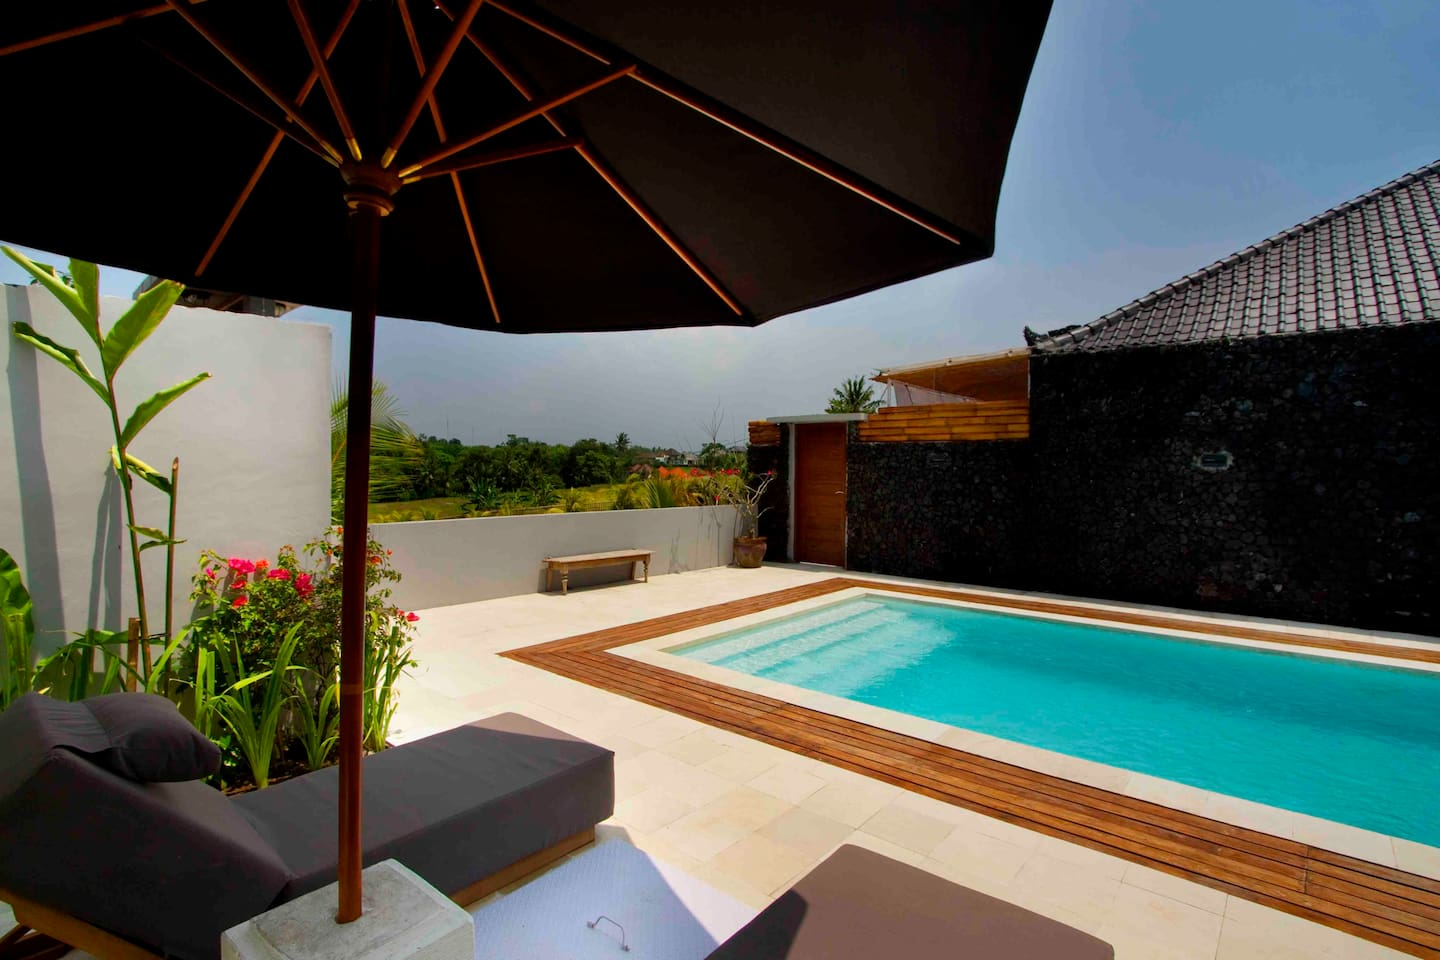 exterior, view from the pool sun lounge area